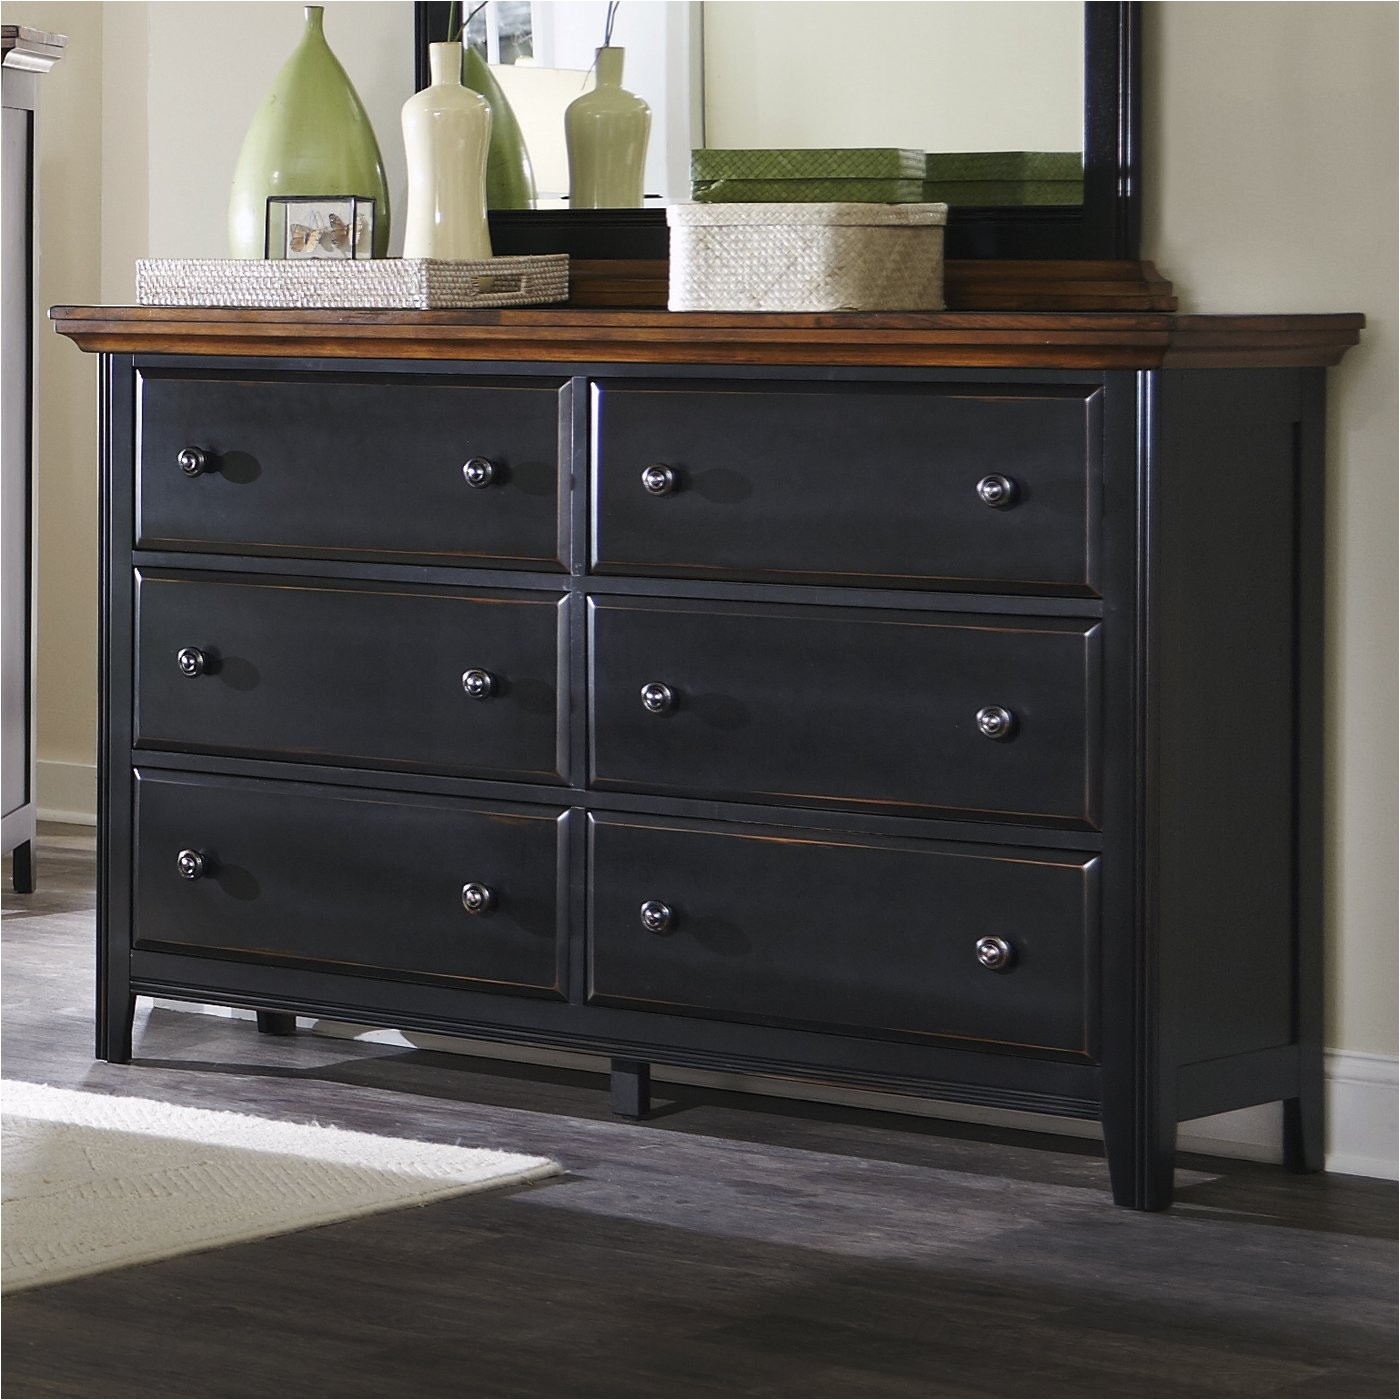 Coaster Fine Furniture Locations Coaster Fine Furniture 203153 Mabel Dresser atg Stores